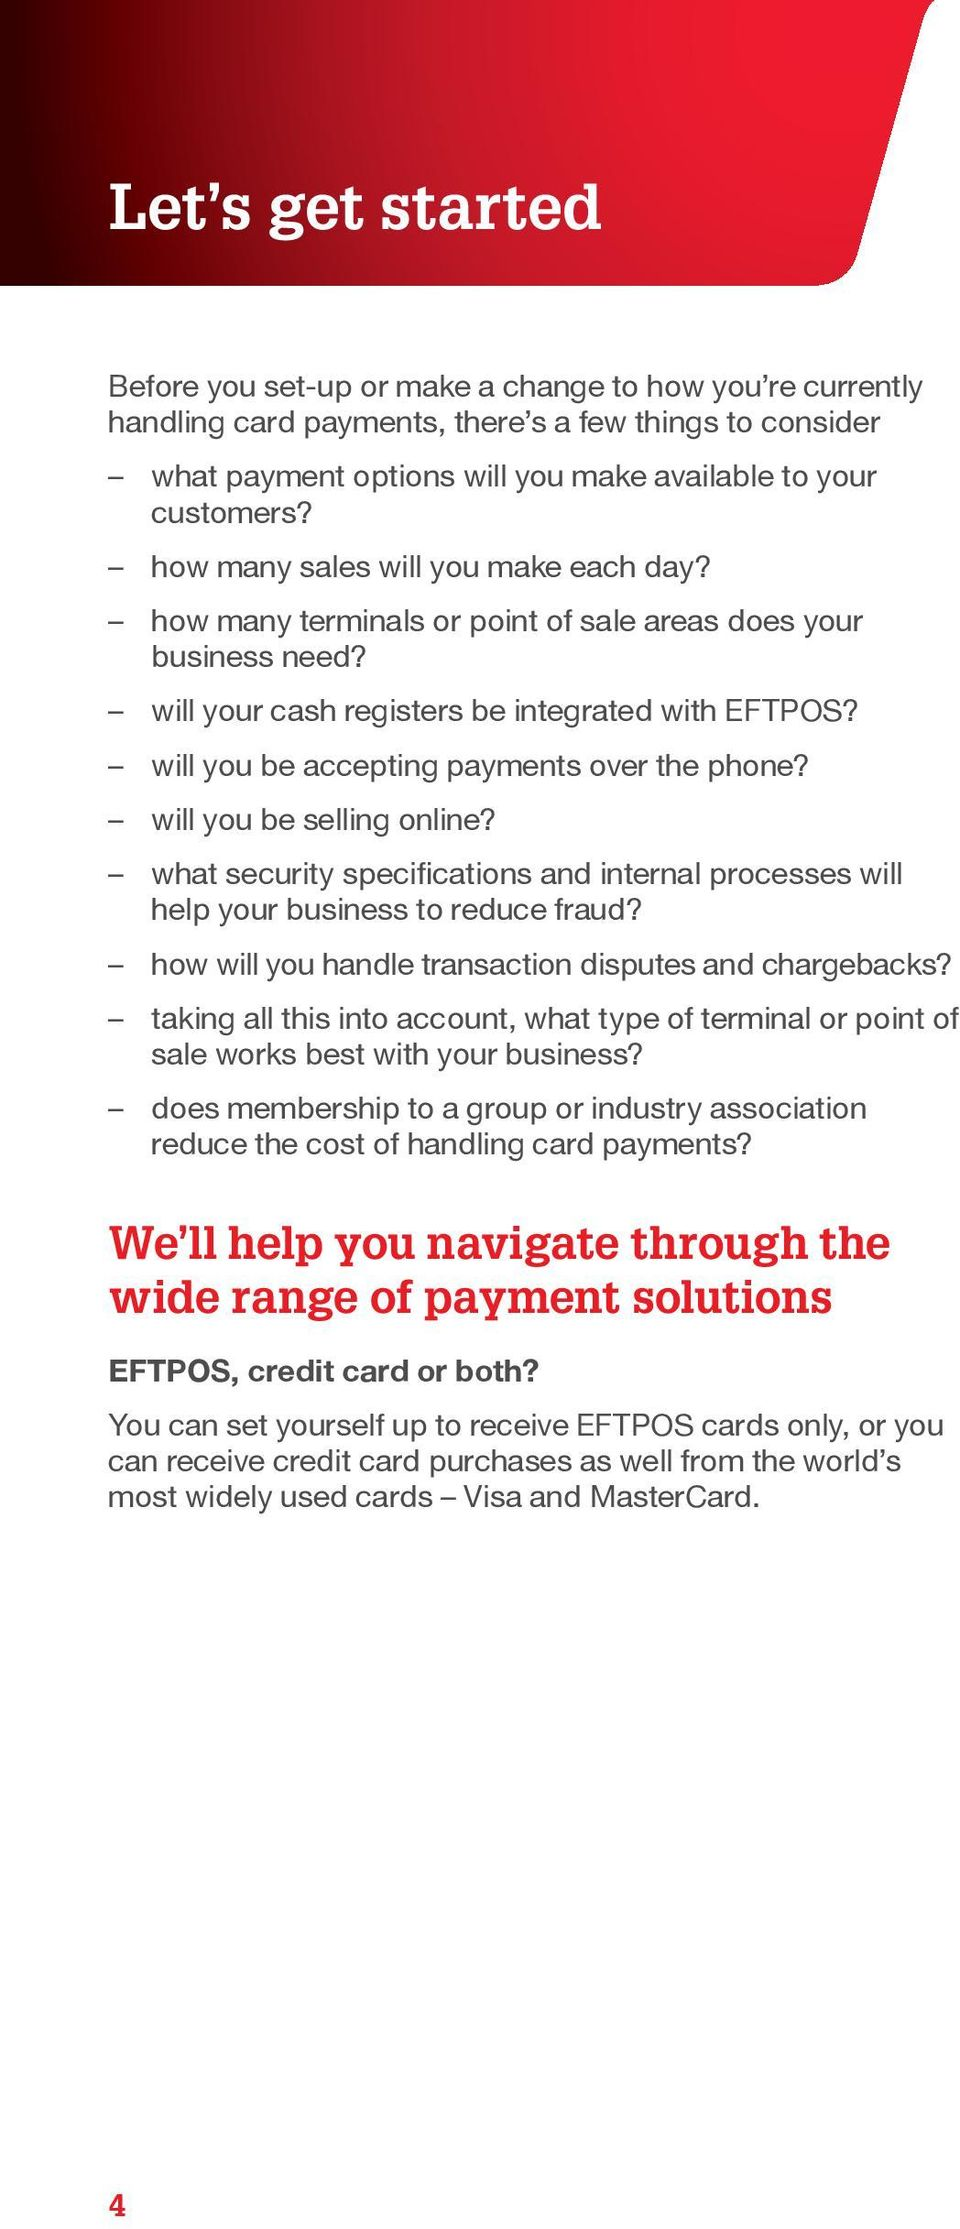 will you be accepting payments over the phone? will you be selling online? what security specifications and internal processes will help your business to reduce fraud?